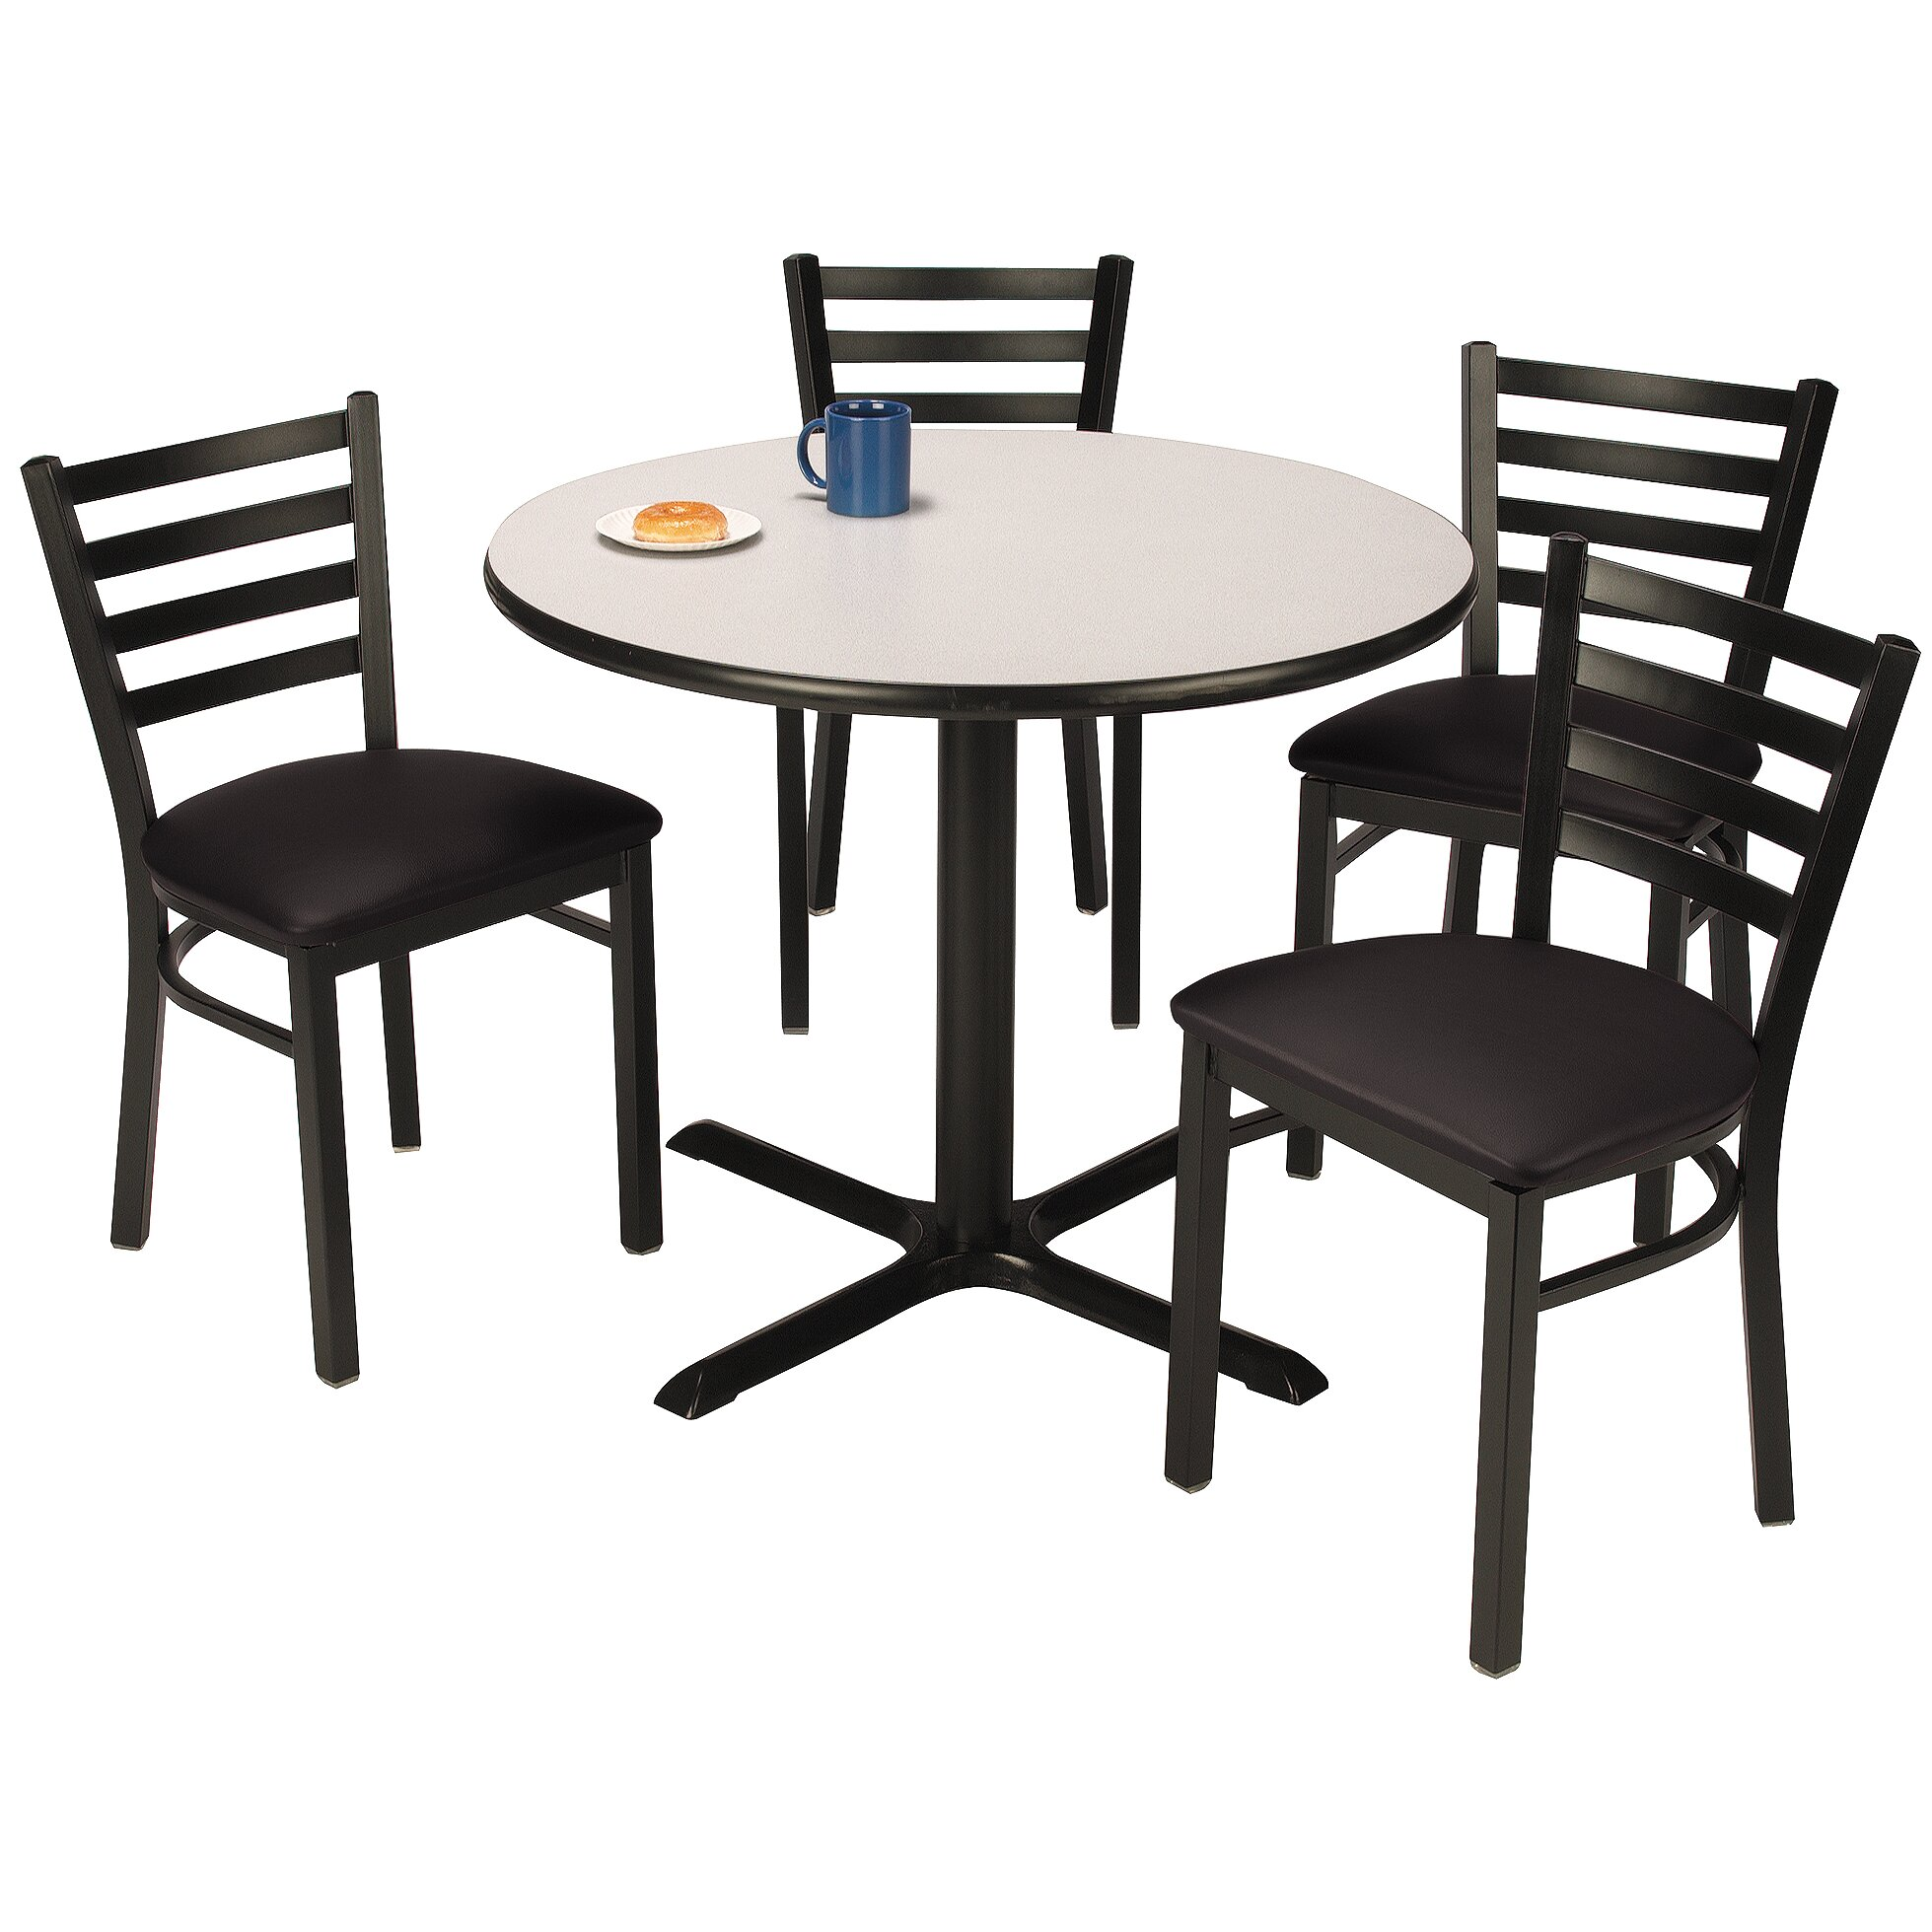 Kfi seating round cafeteria table and chair set wayfair for Table and chair set